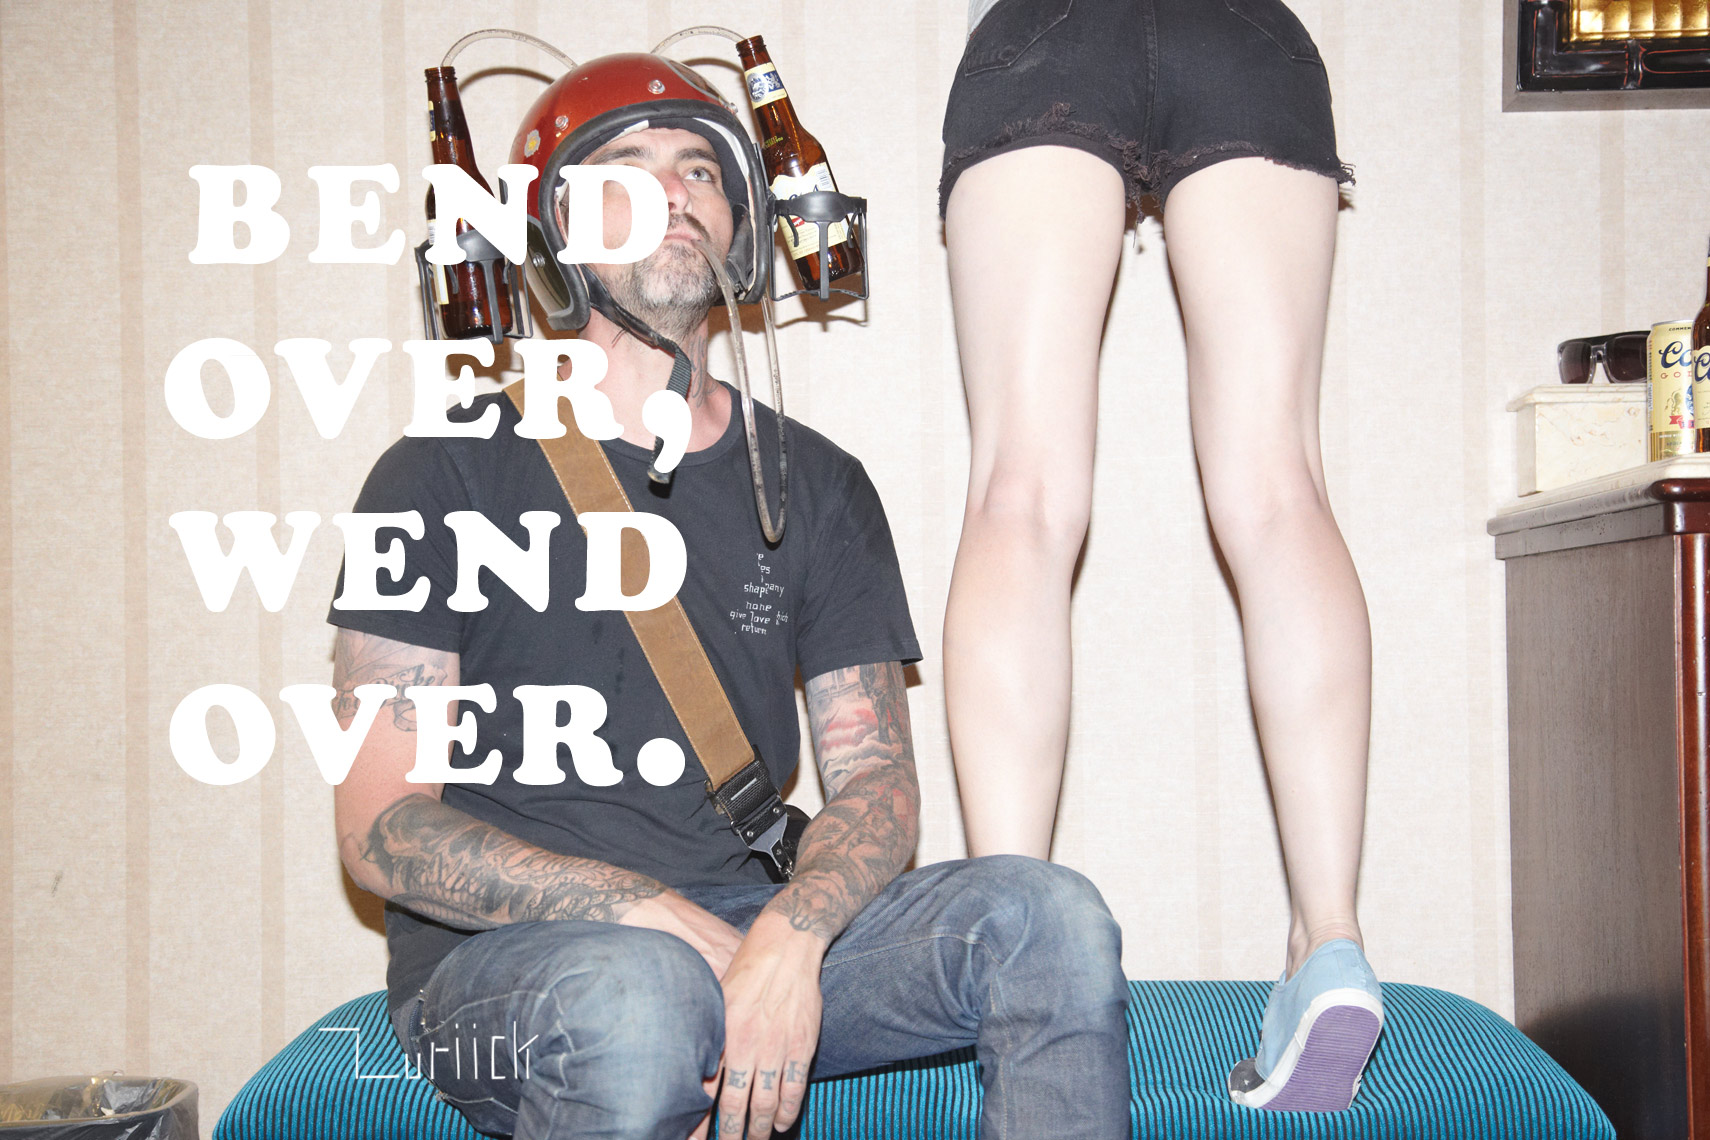 BENDOVER-COVER-5